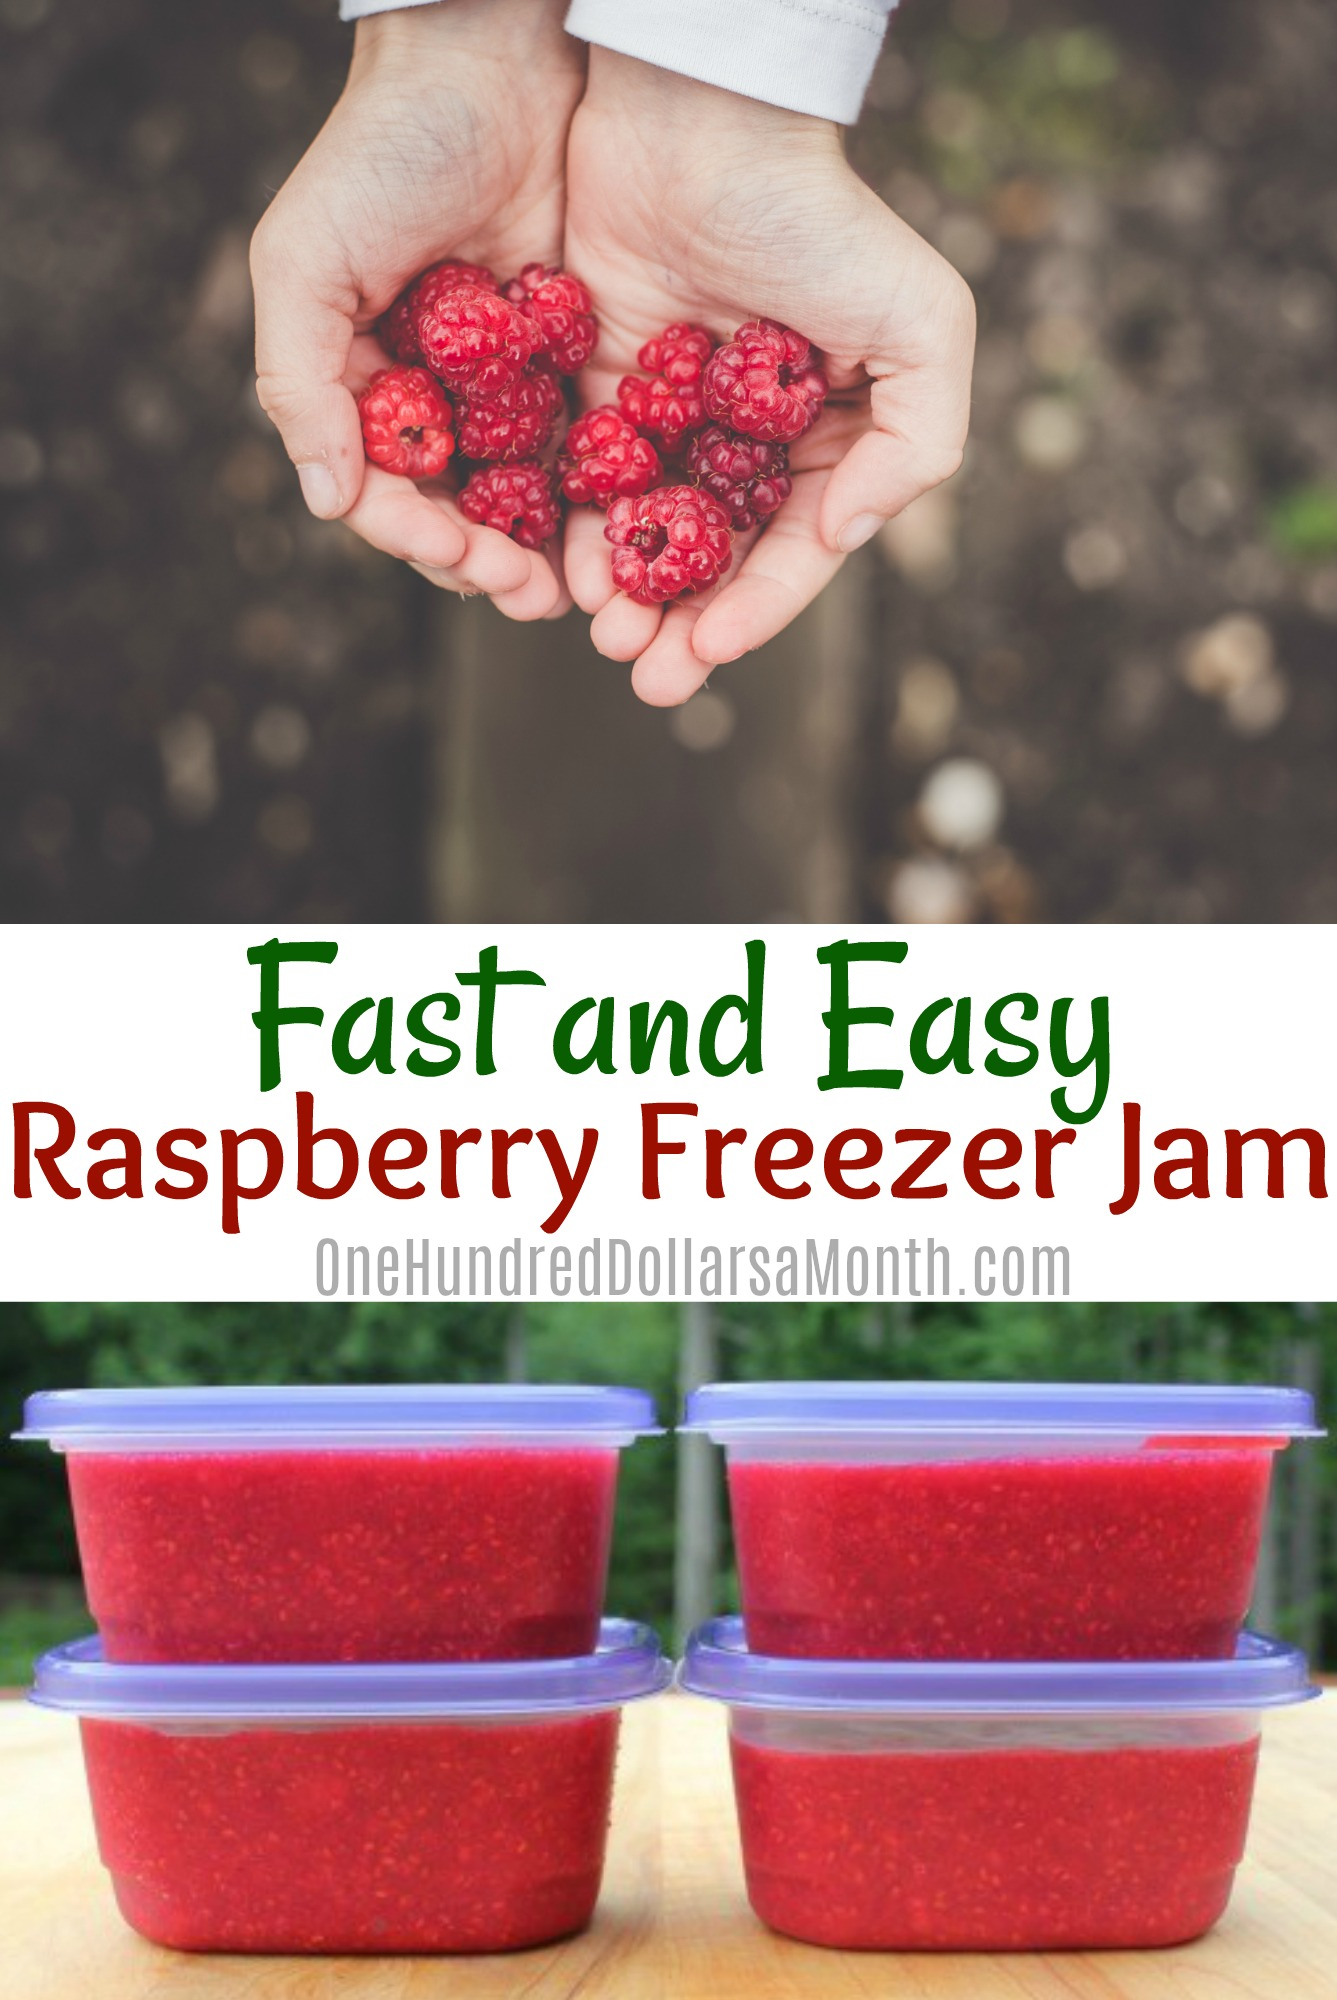 Fast and Easy Raspberry Freezer Jam e Hundred Dollars a Month